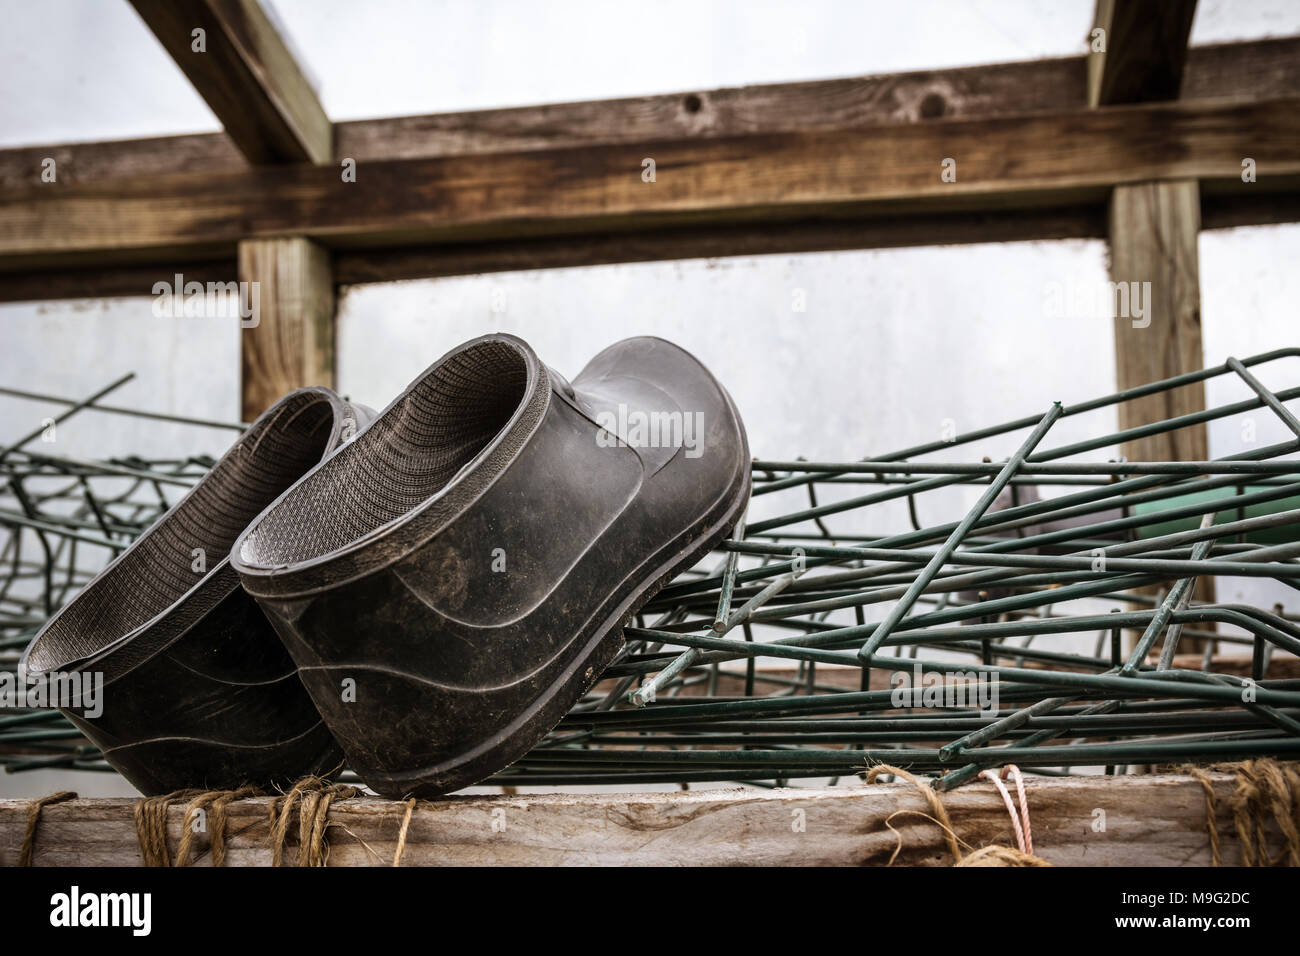 Rubber boots of a farmer lying in greenhouse. Agriculture and tough work concept. - Stock Image